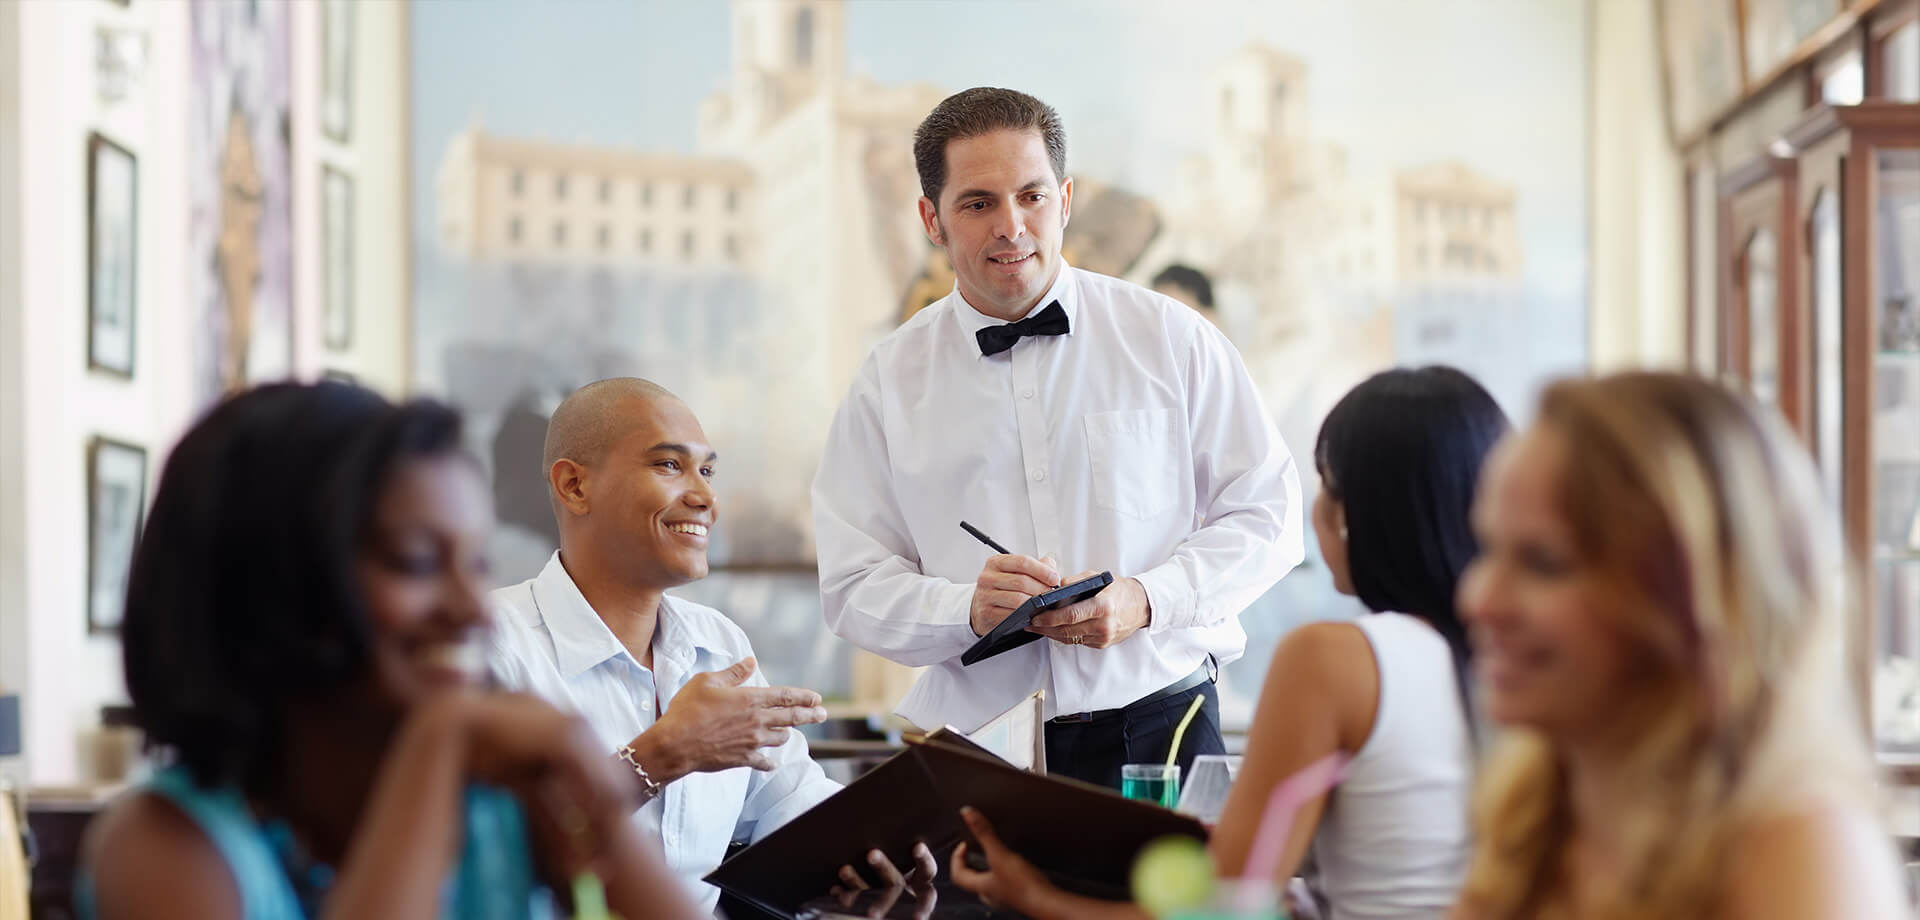 Helping Hospitality Industry Staff Members in their Time of Need